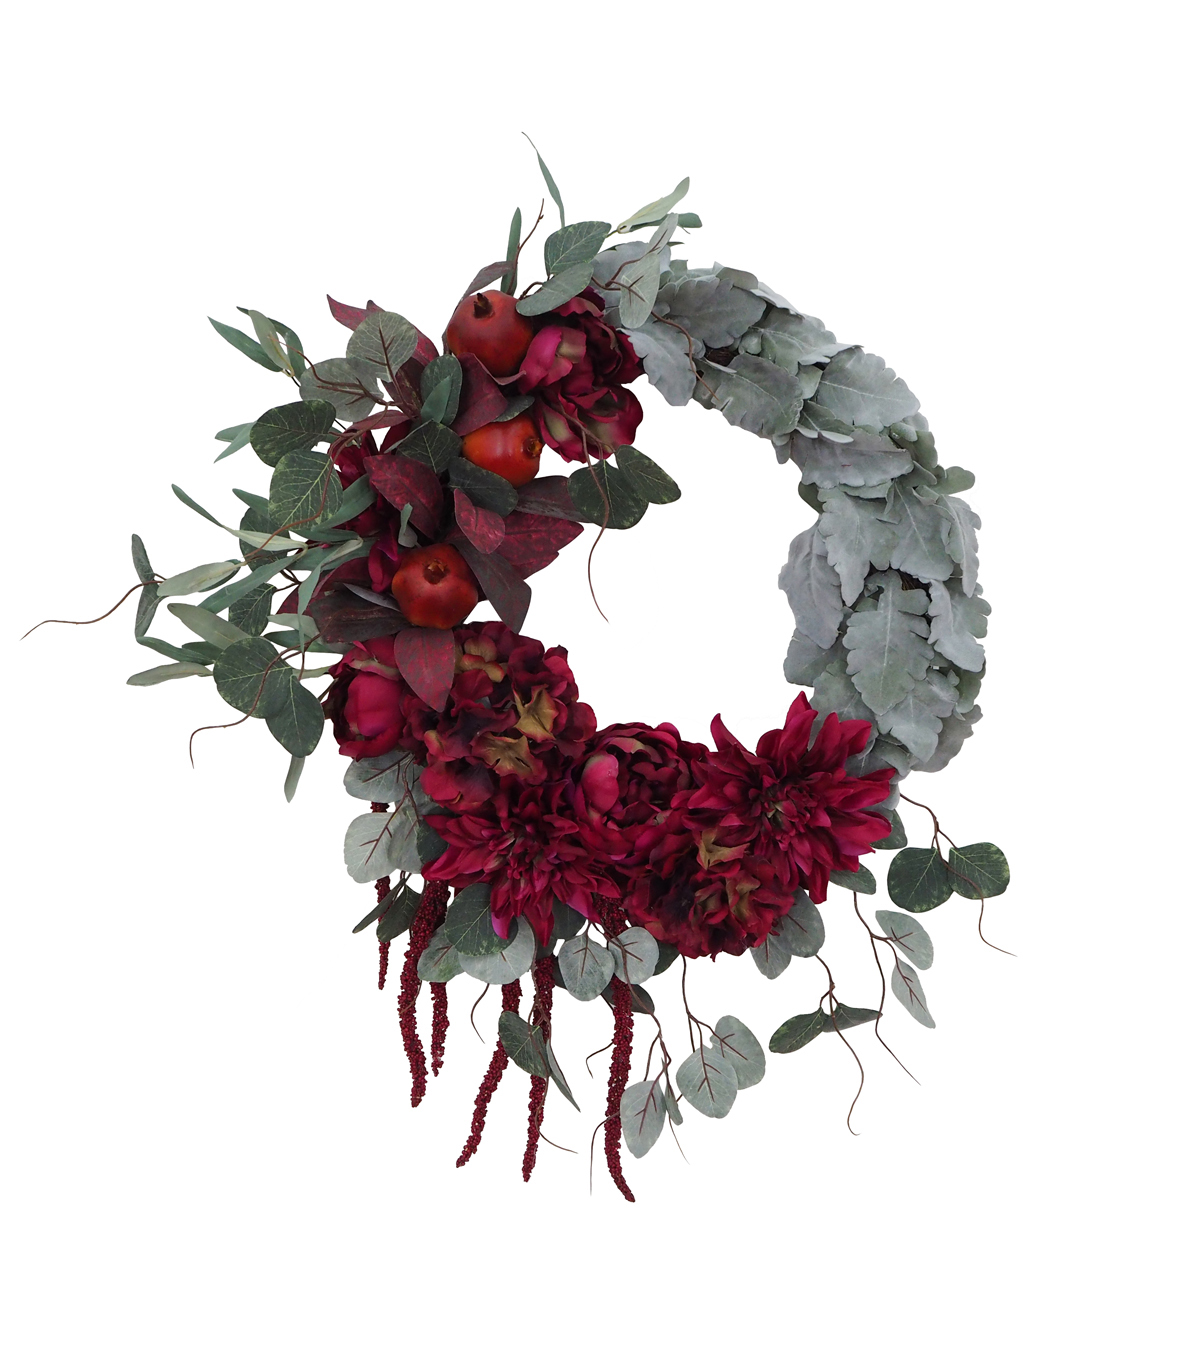 Blooming Autumn Peony, Dahlia & Greenery Wreath